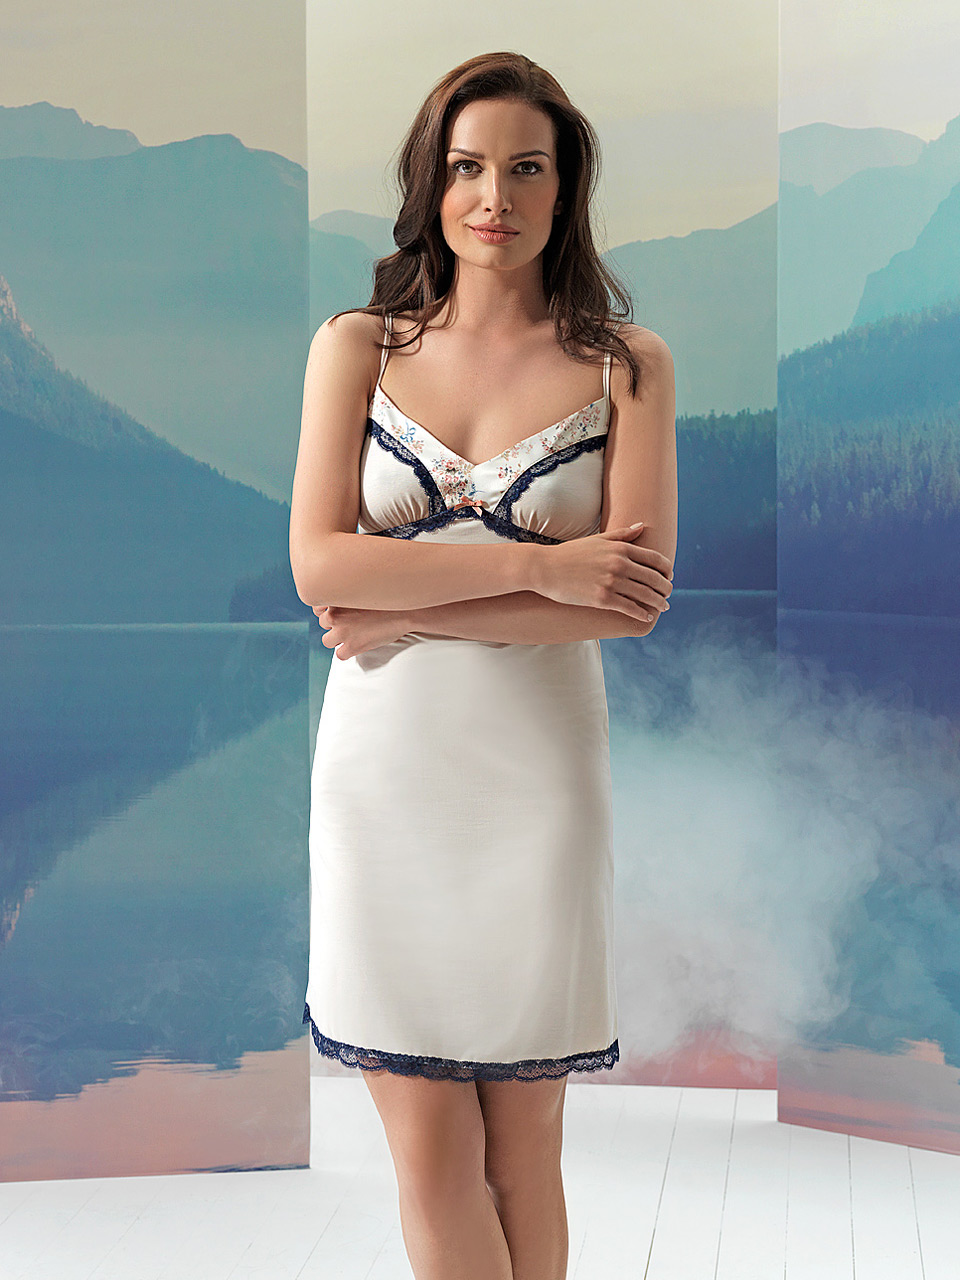 Sparkle 2946 Chemise<br />03 Navy Blue, 55 Pearl